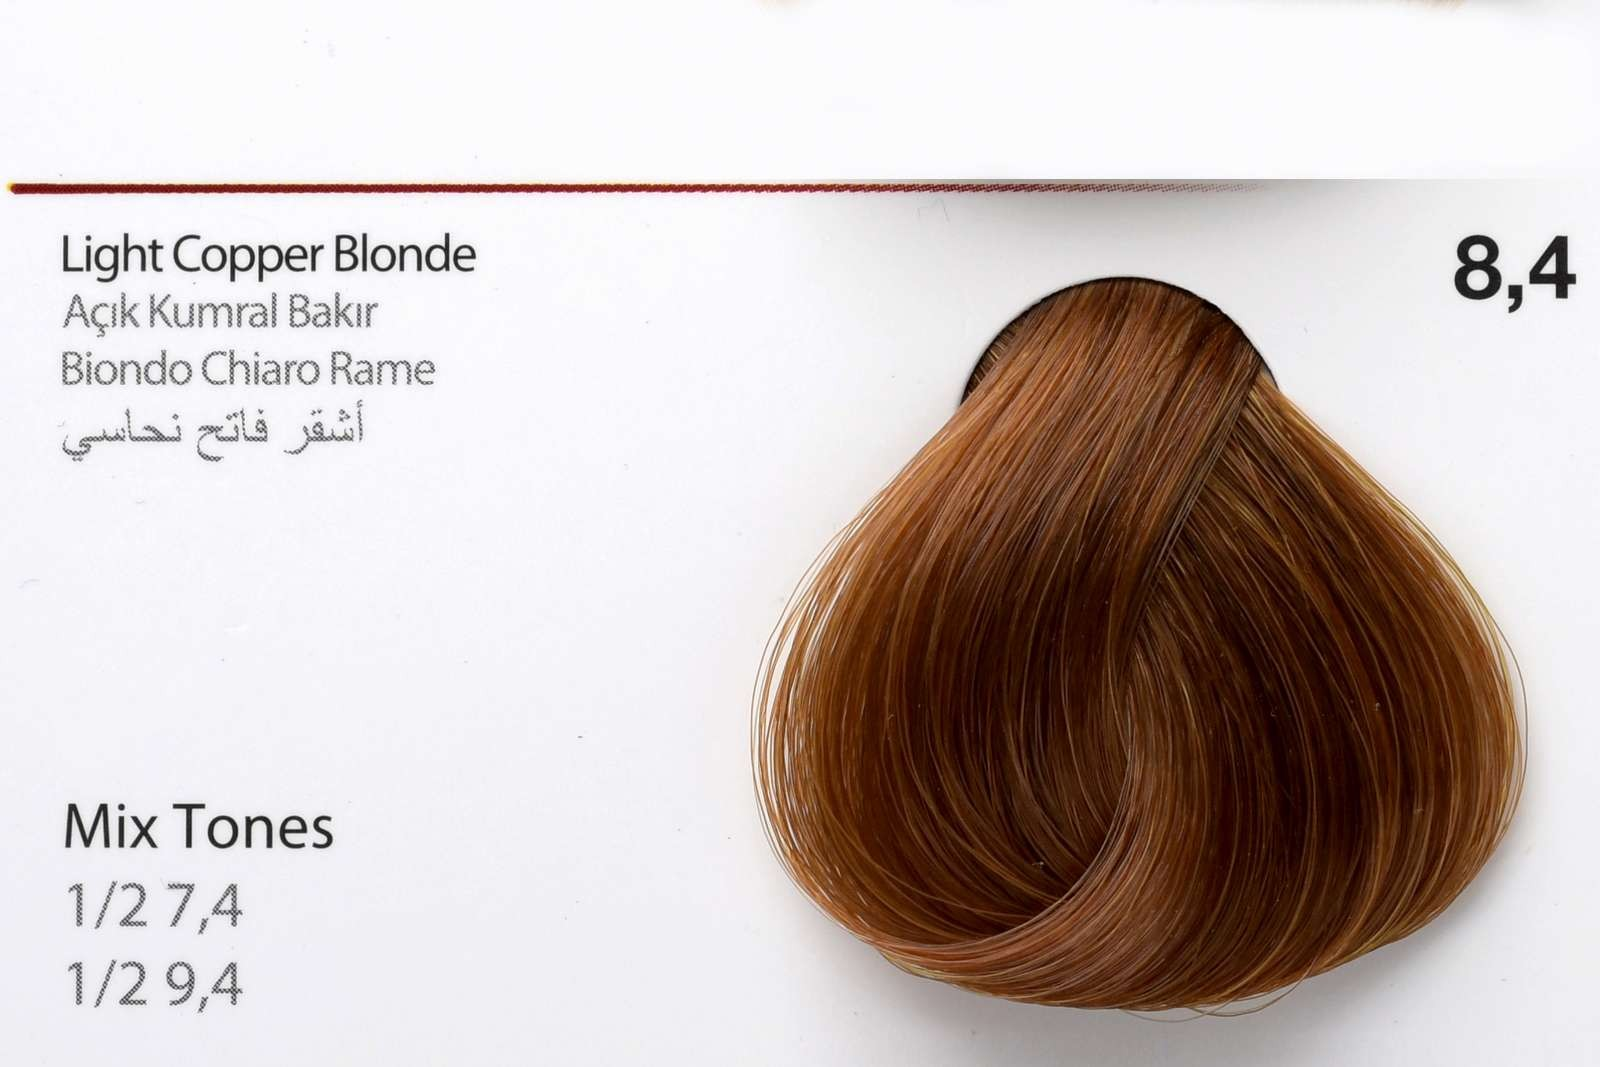 8,4 - Light Copper Blonde-swatch